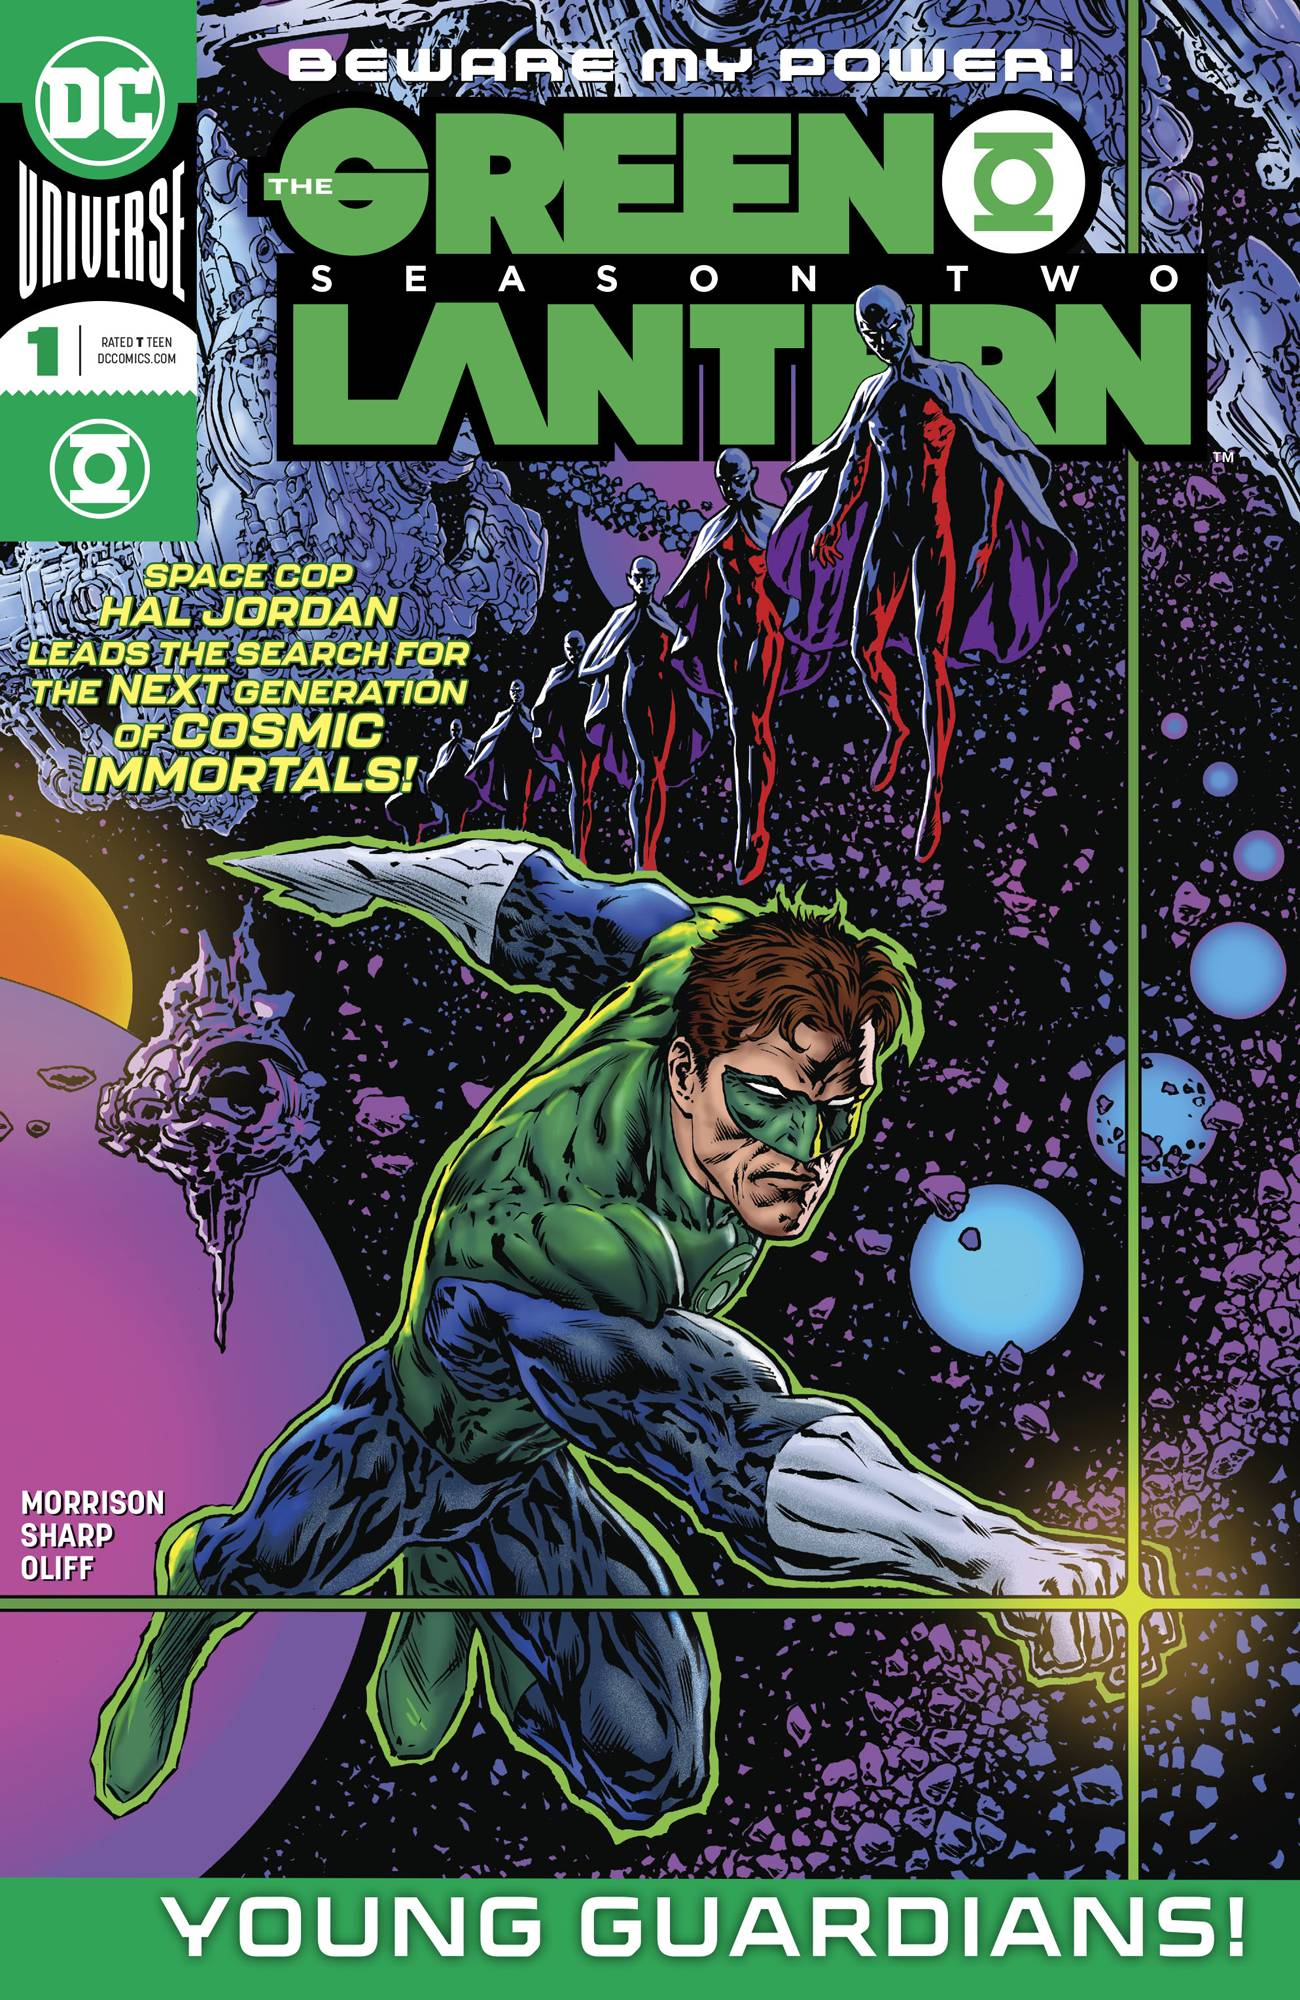 The Green Lantern: Season Two Vol 1 1